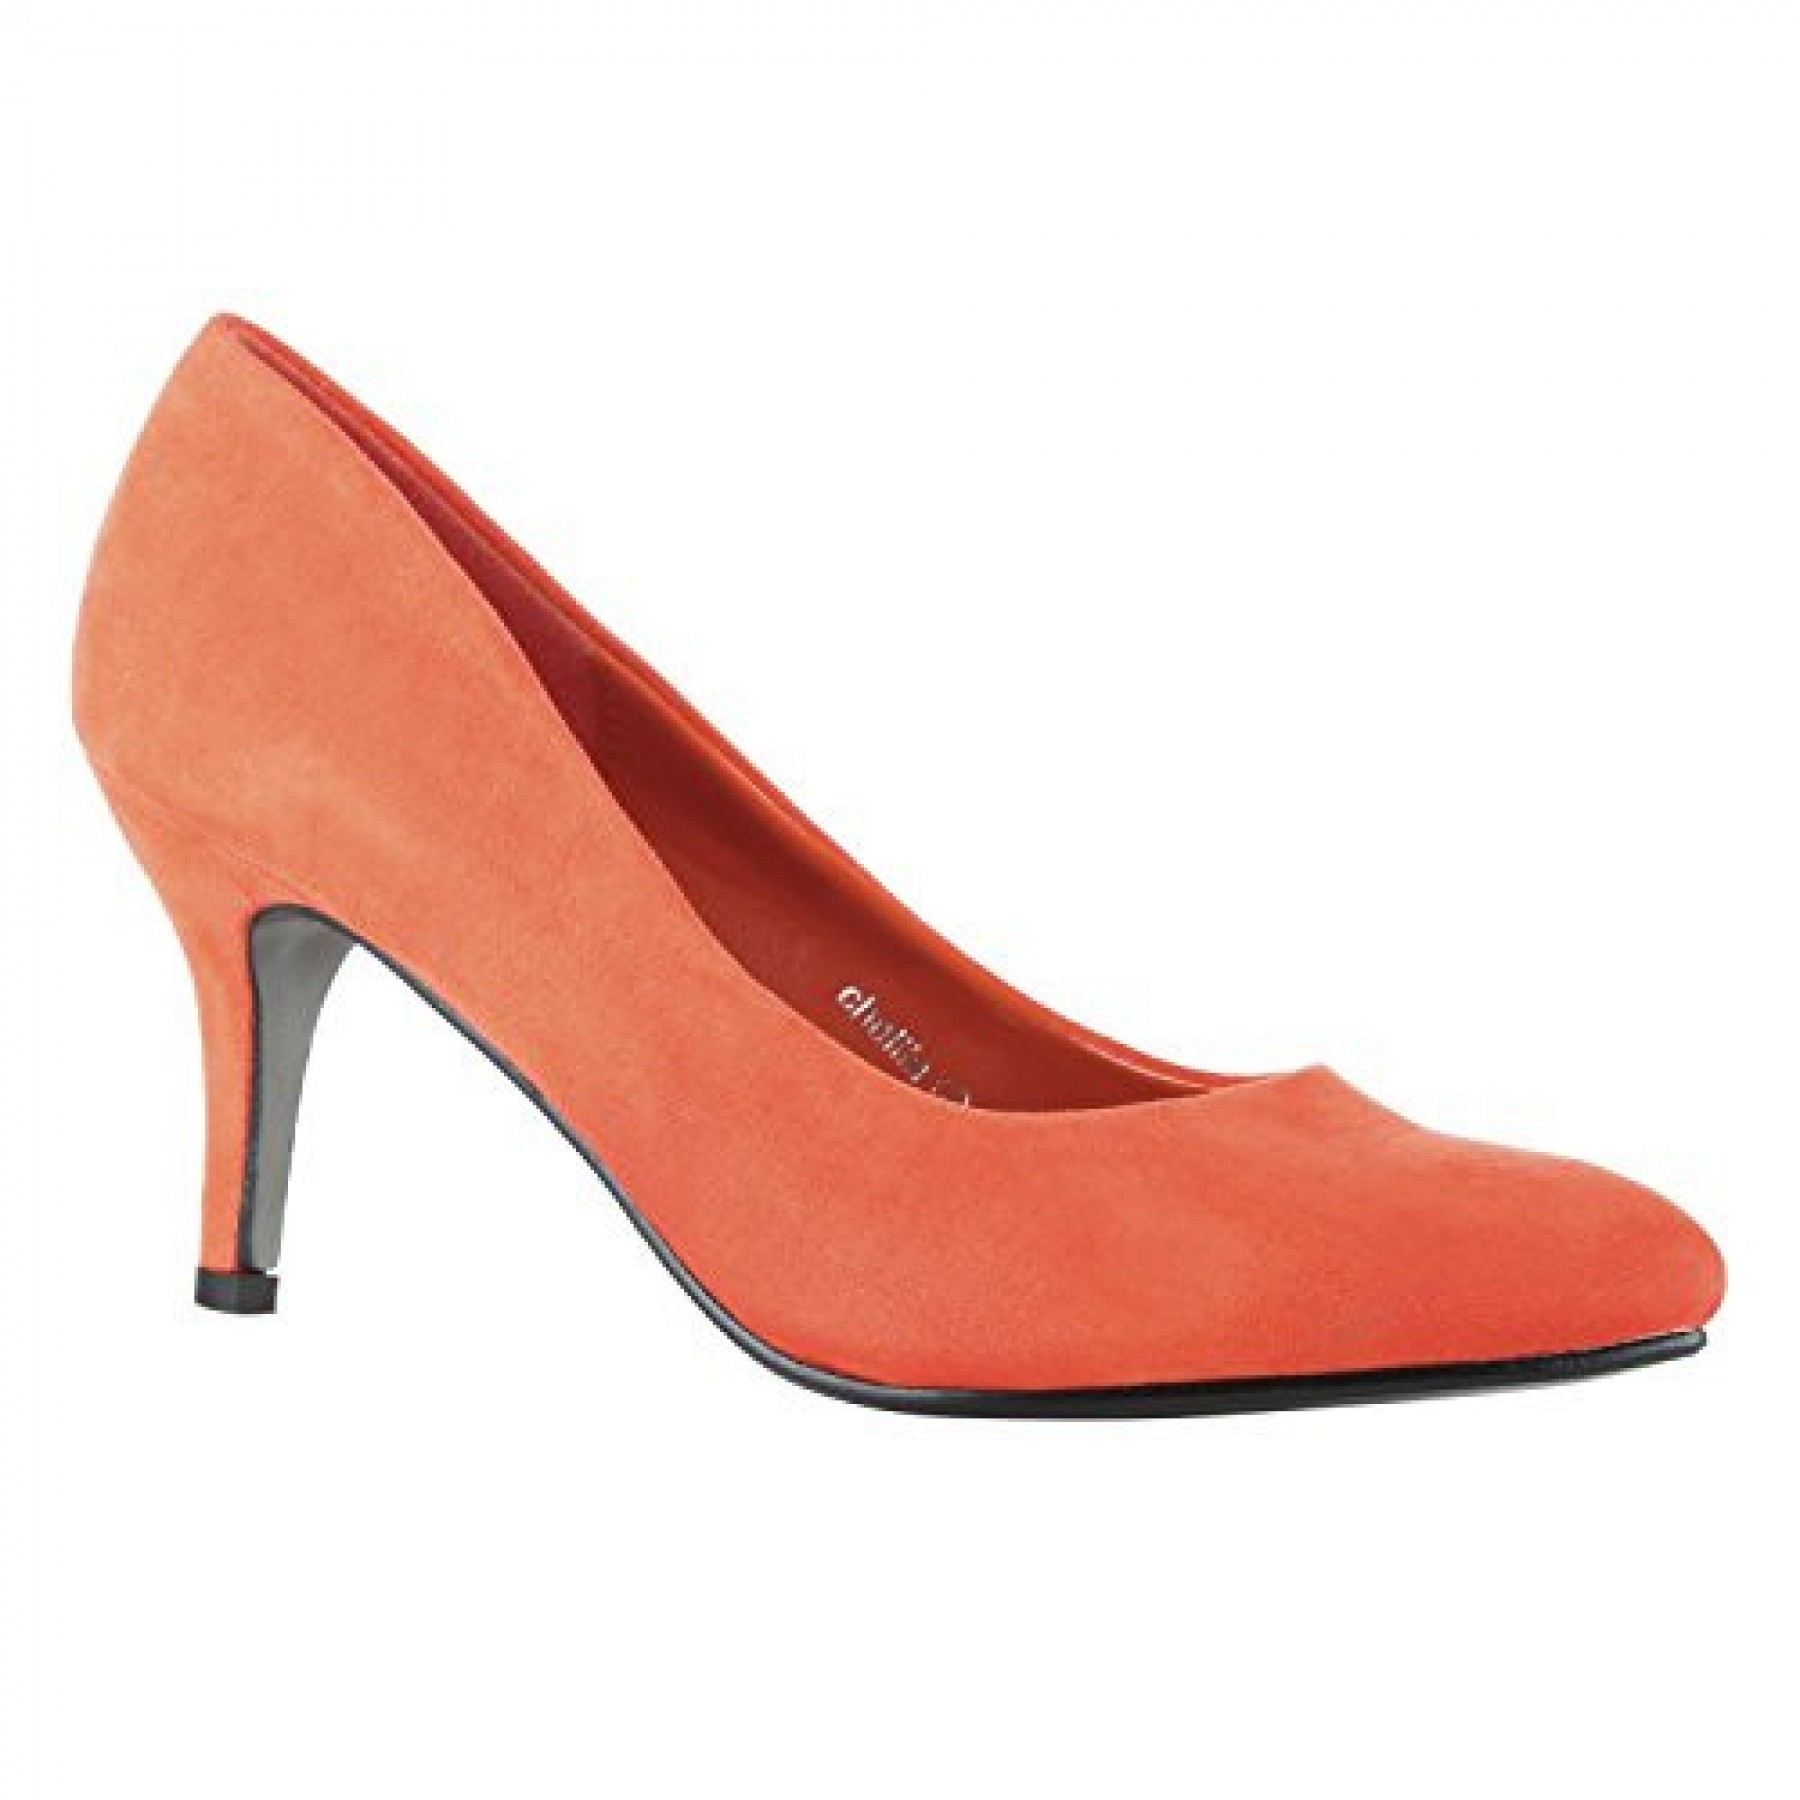 Women's Coral Manmade Chellla 3-inch Pointed Toe Classic Pumps